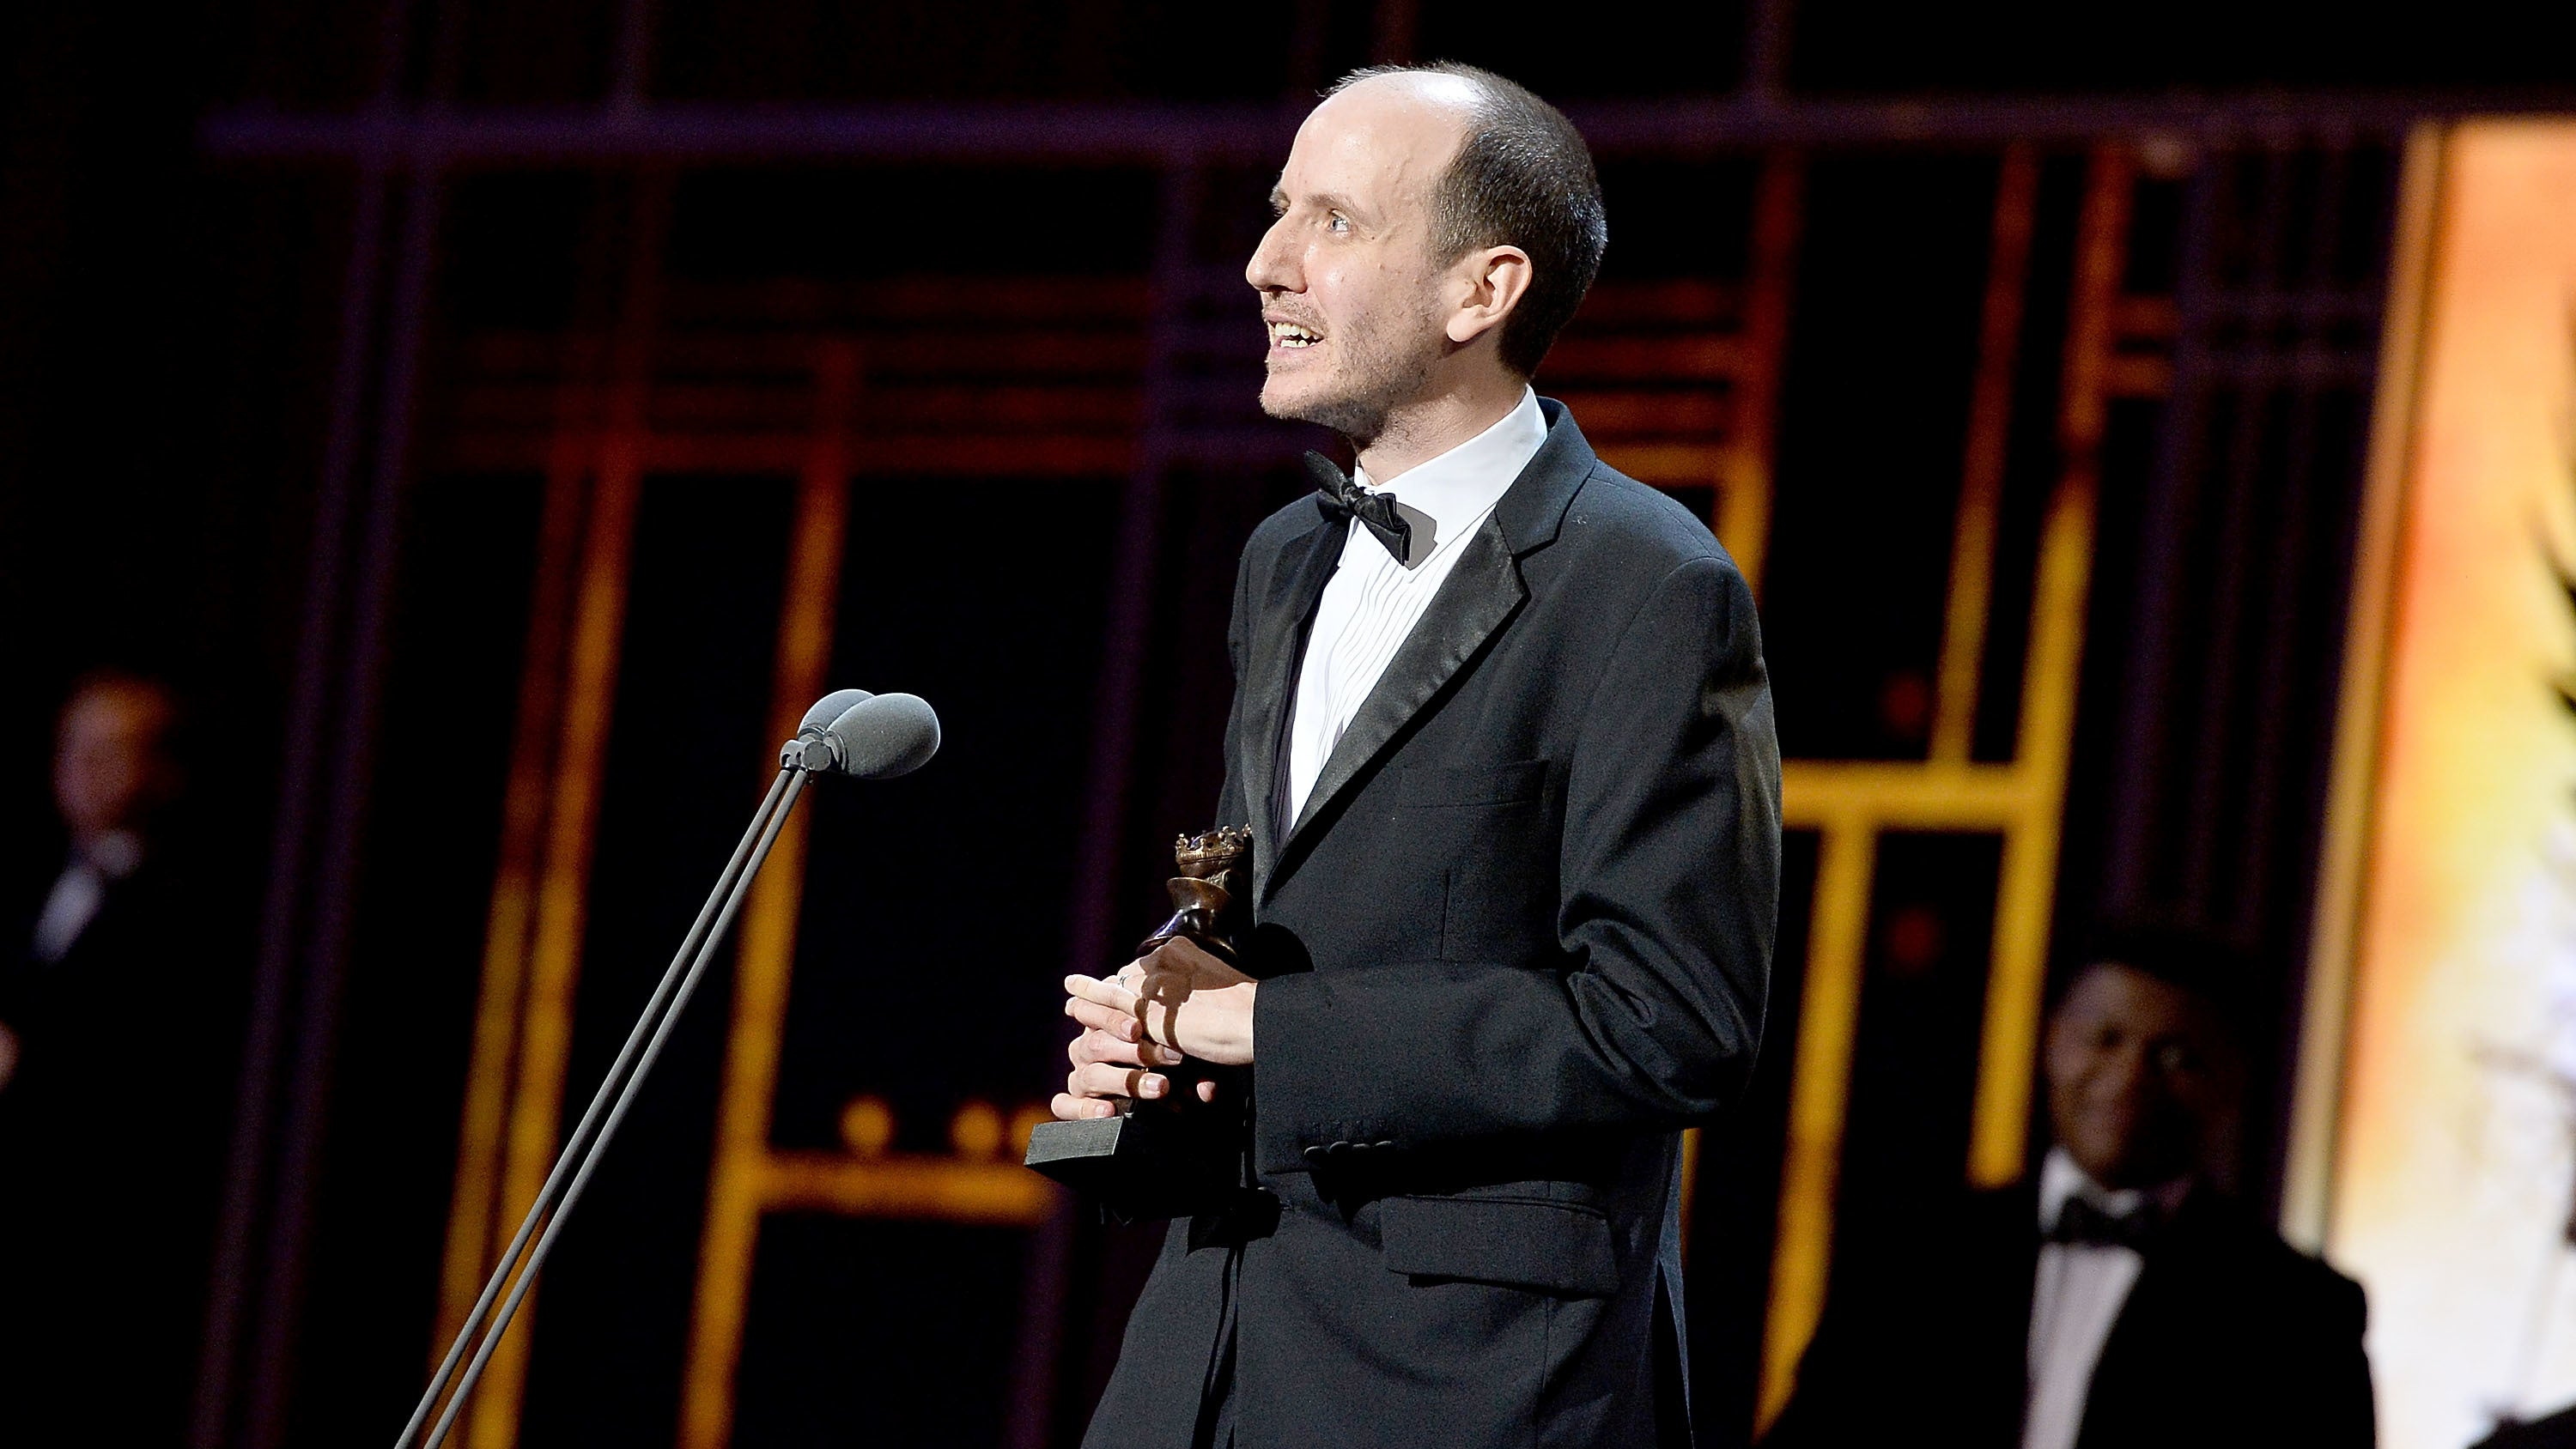 Star Wars: Episode IX's New Writer IsHarry Potter And The Cursed Child's Jack Thorne